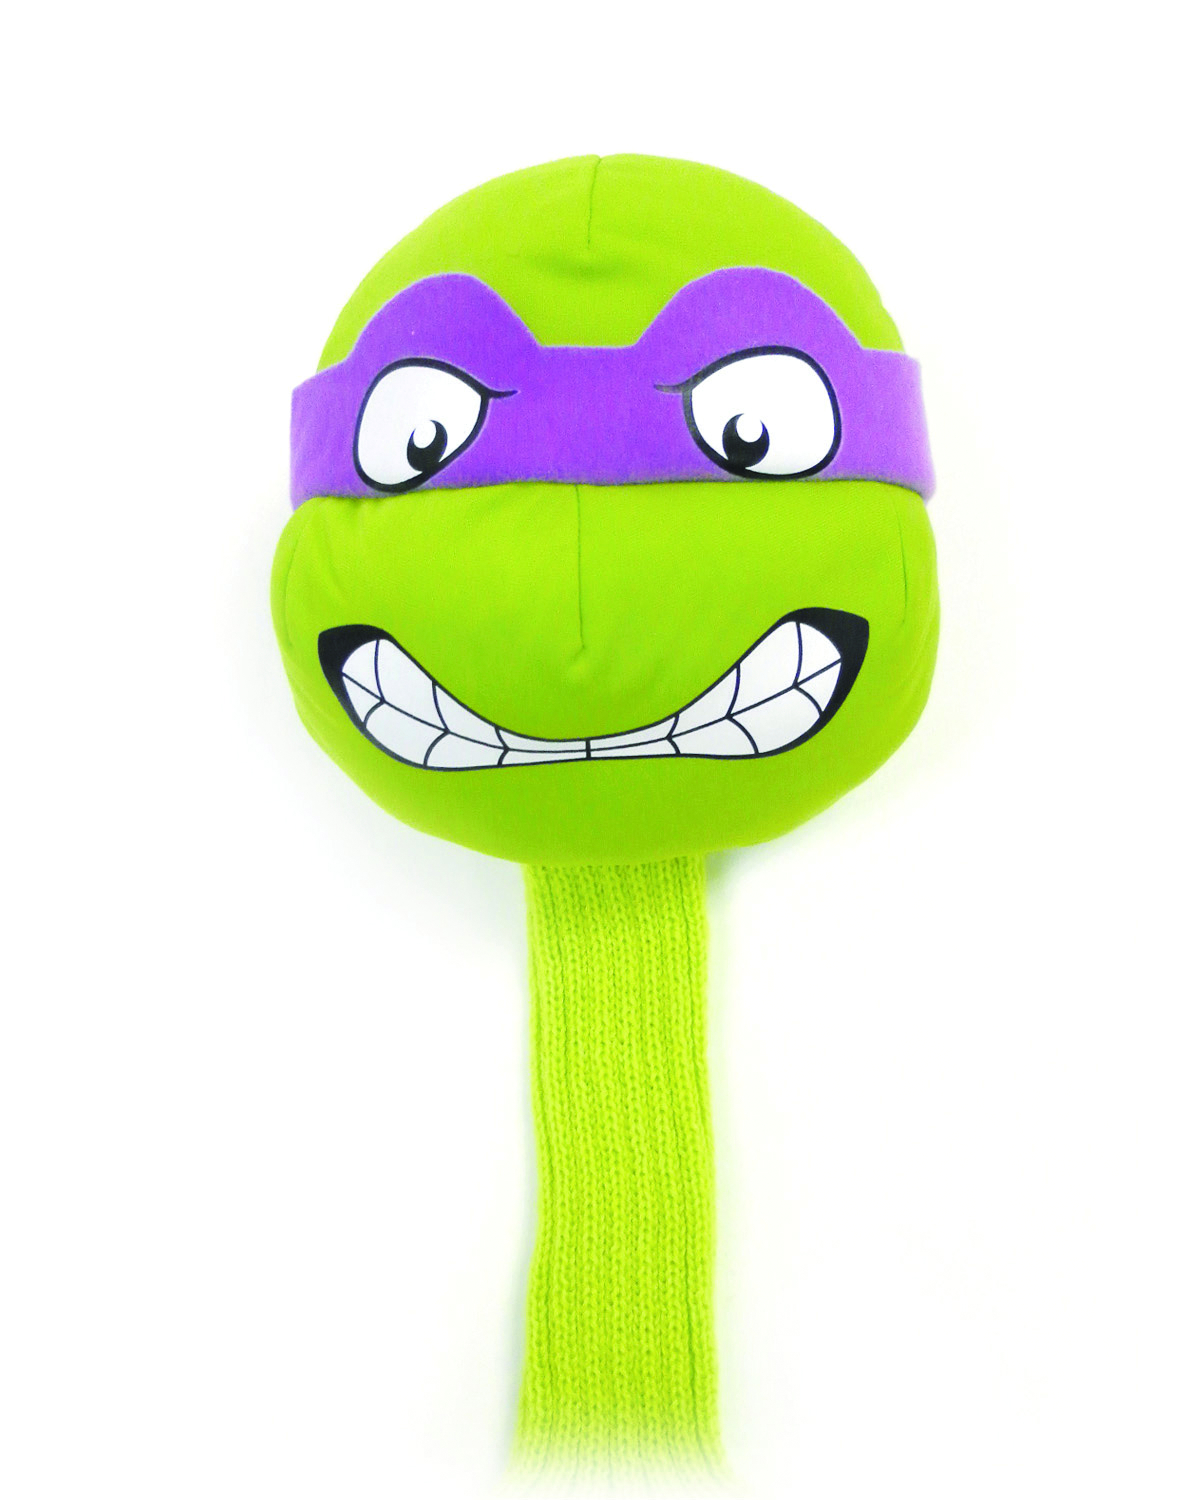 TMNT MICHELANGELO GOLF CLUB COVER